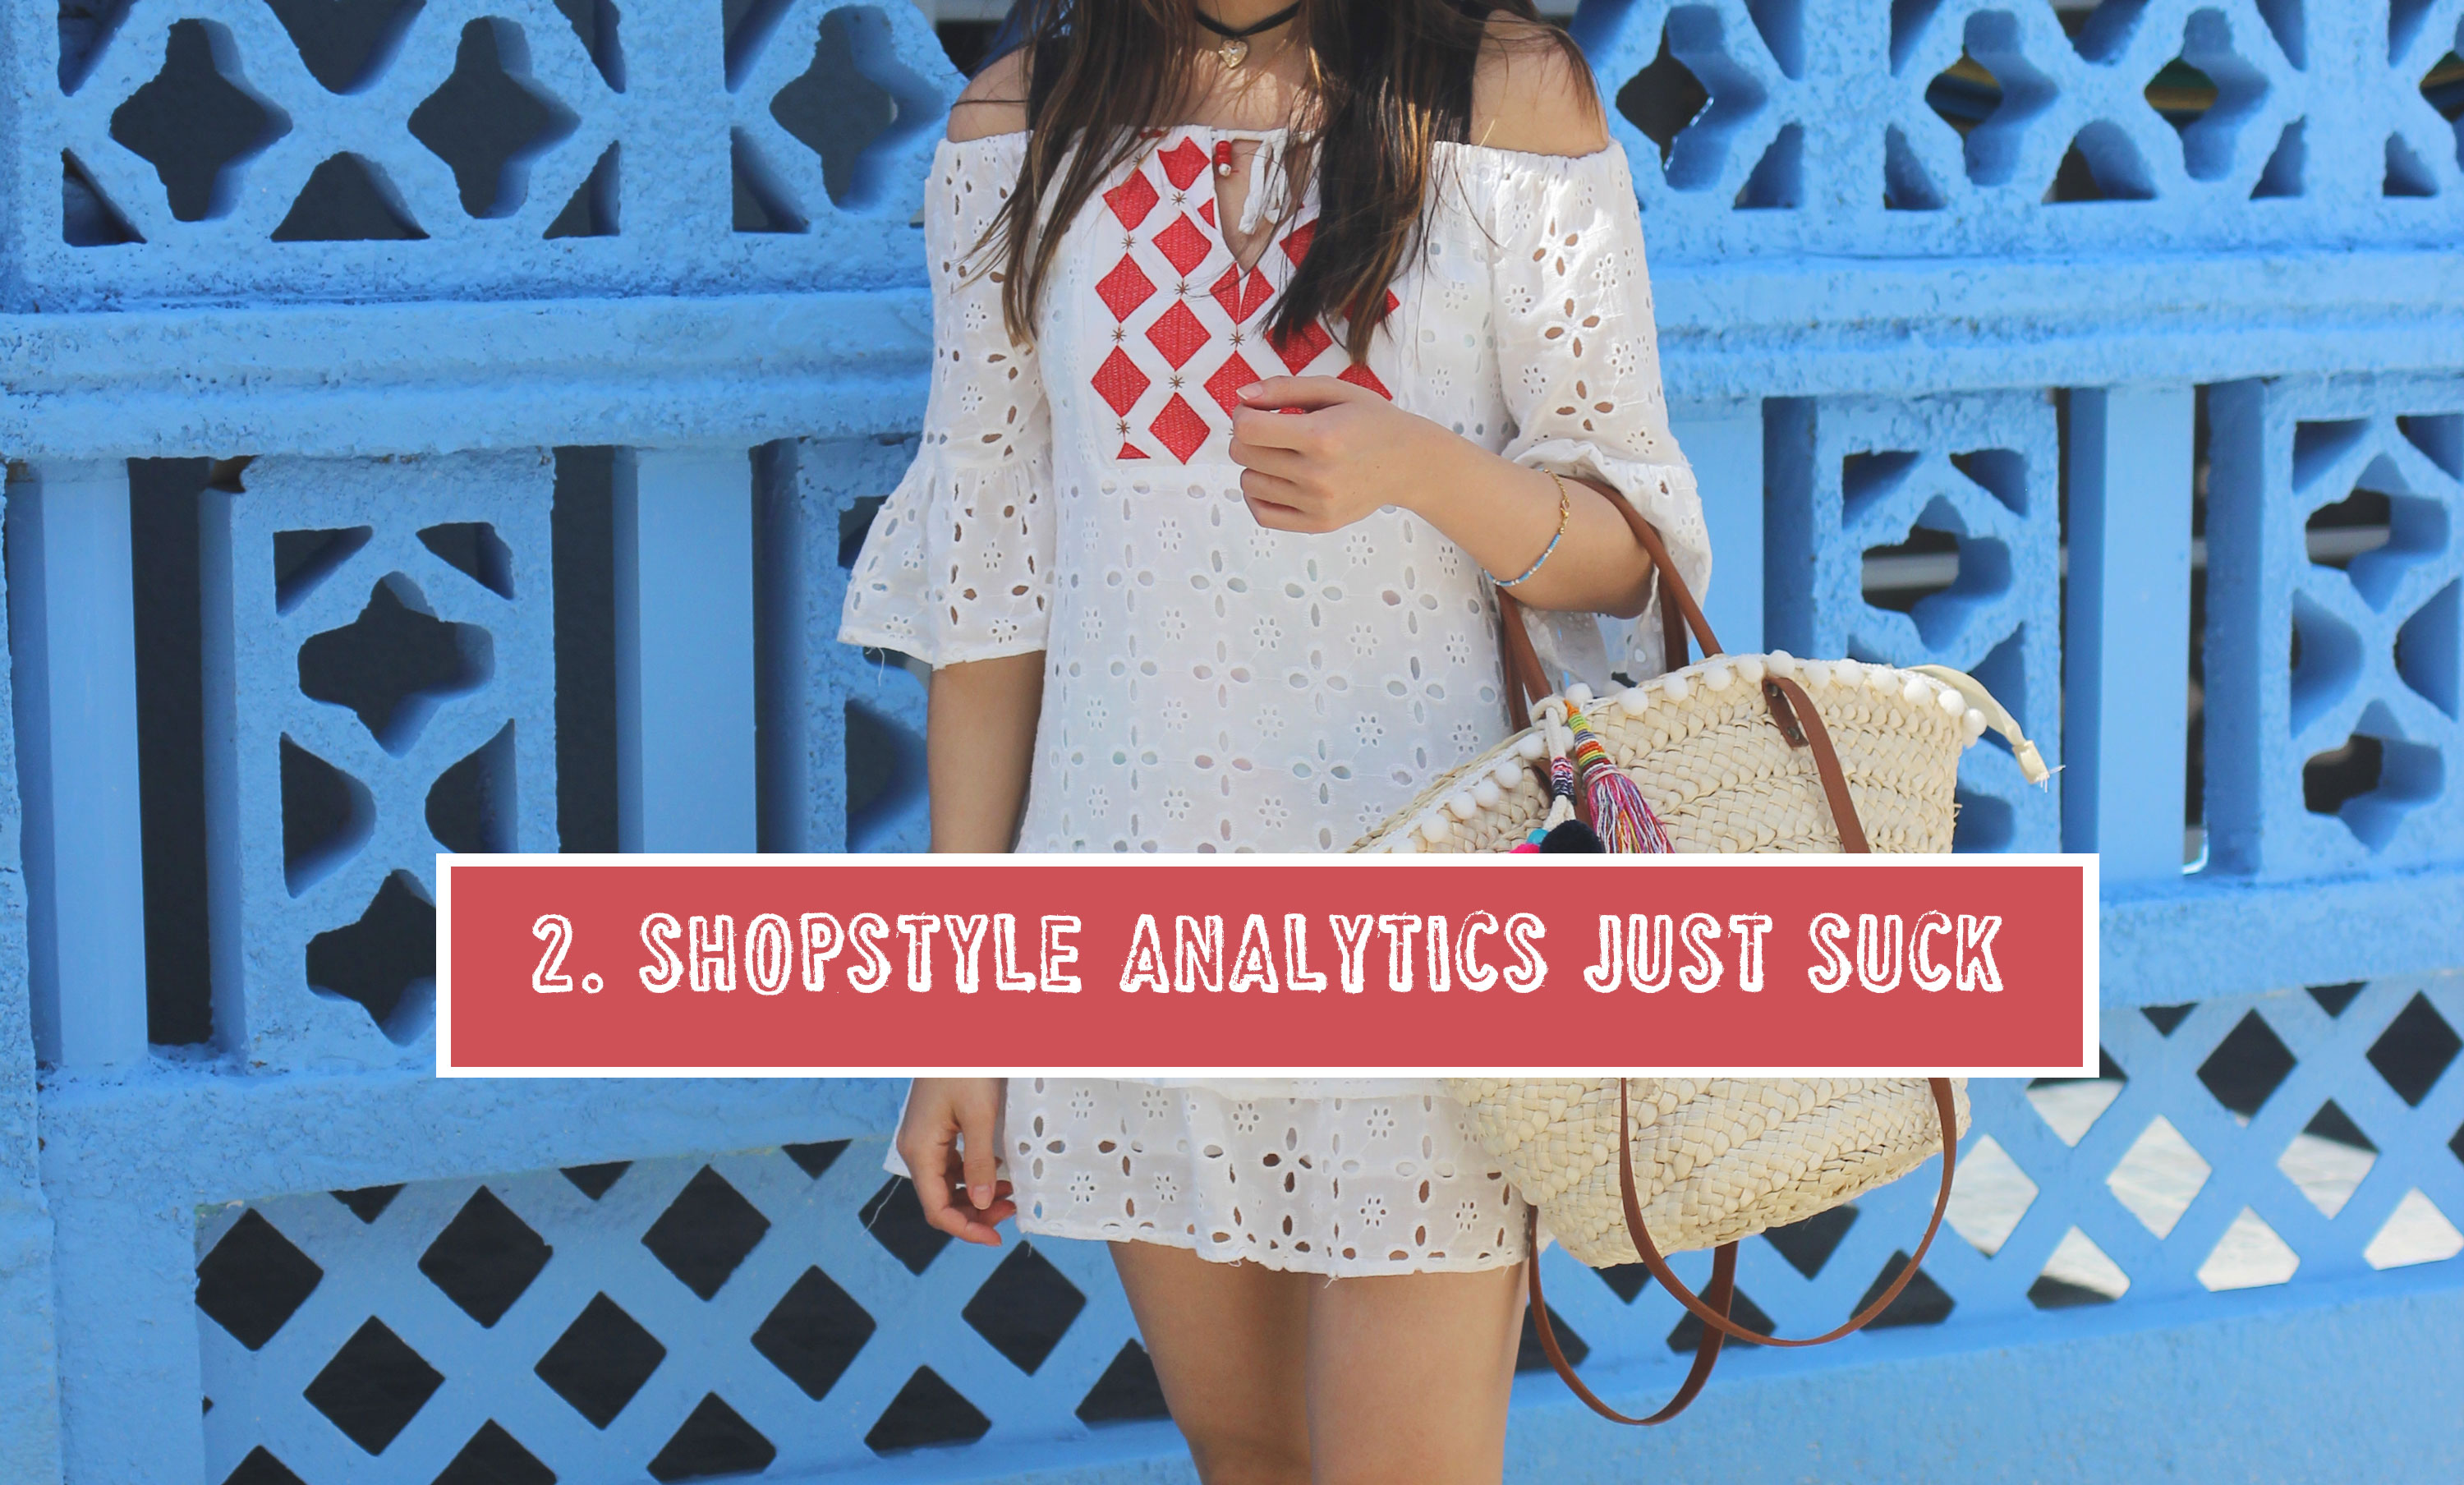 Shopstyle analytics are terrible compared to Rewardstyle's affiliate links